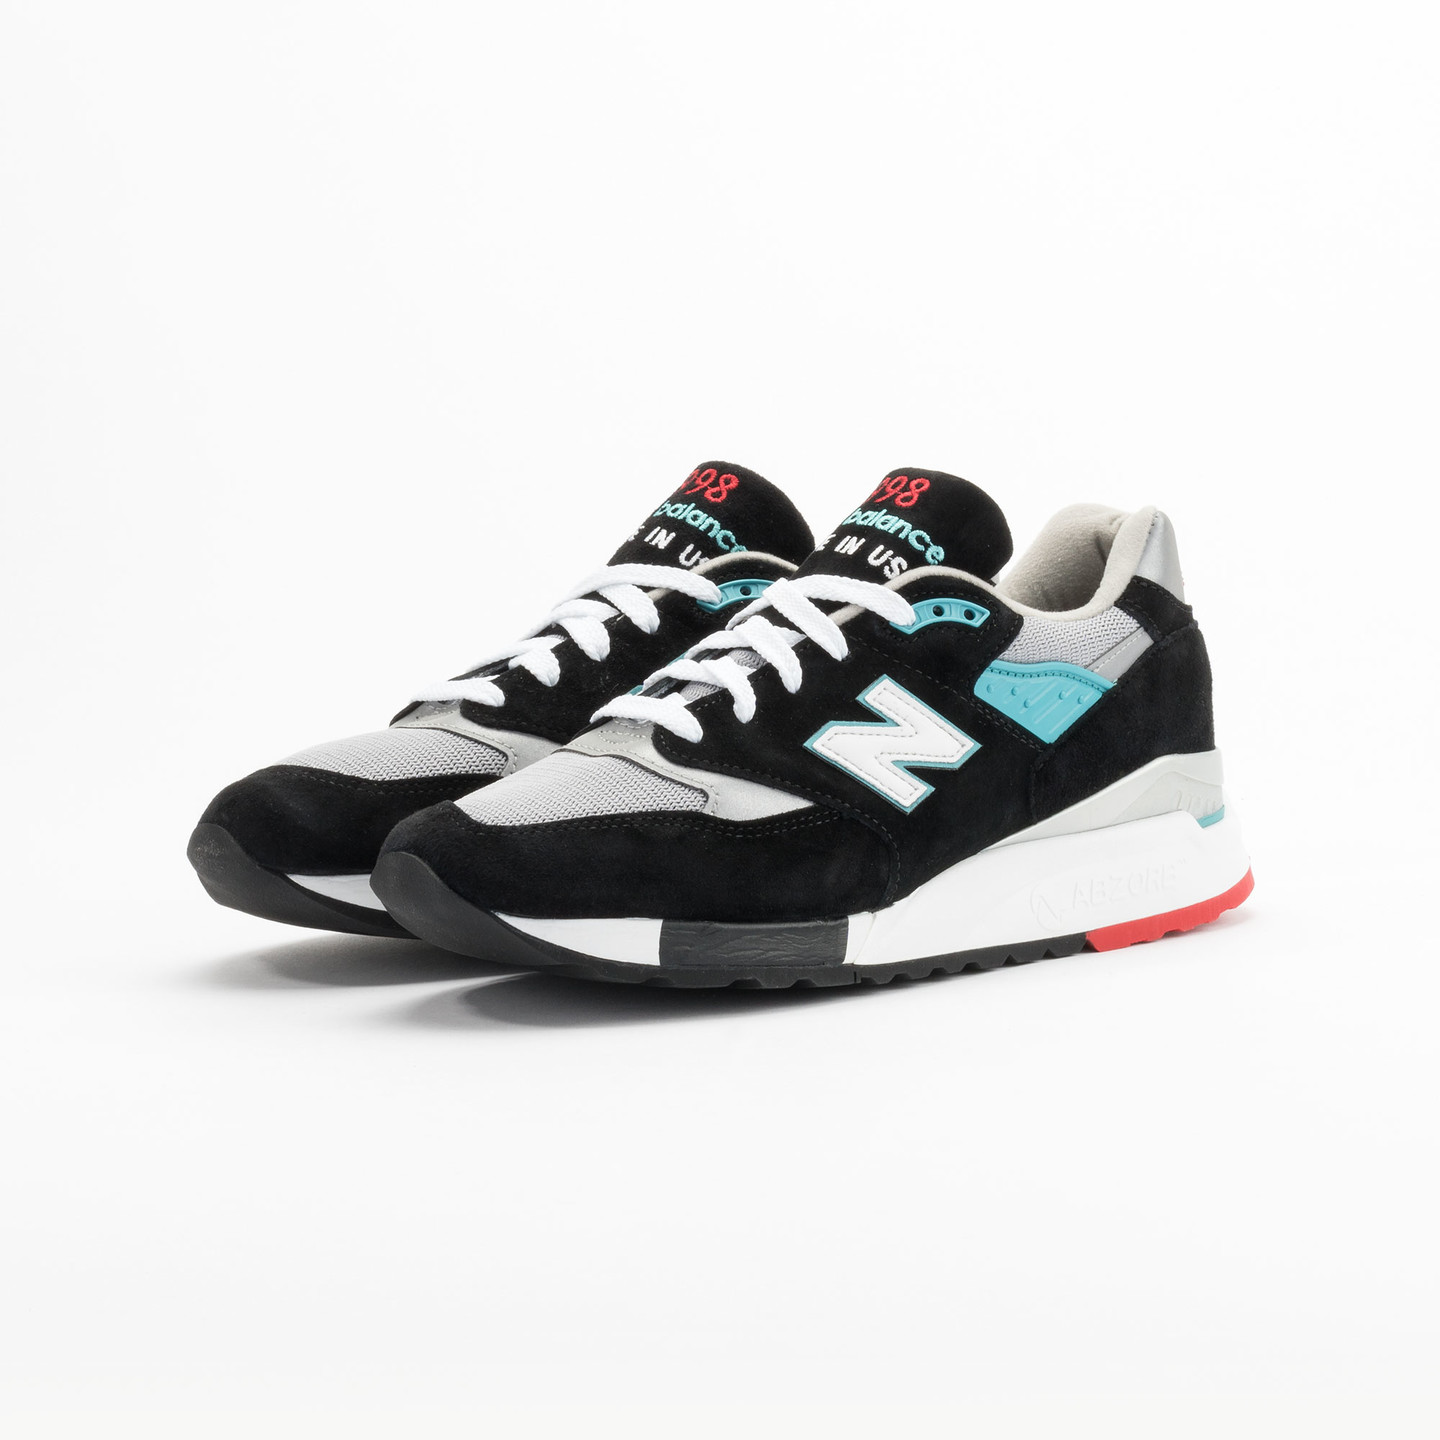 New Balance M998 CBB - Made in USA Black / Grey / Turquoise M998CBB-44